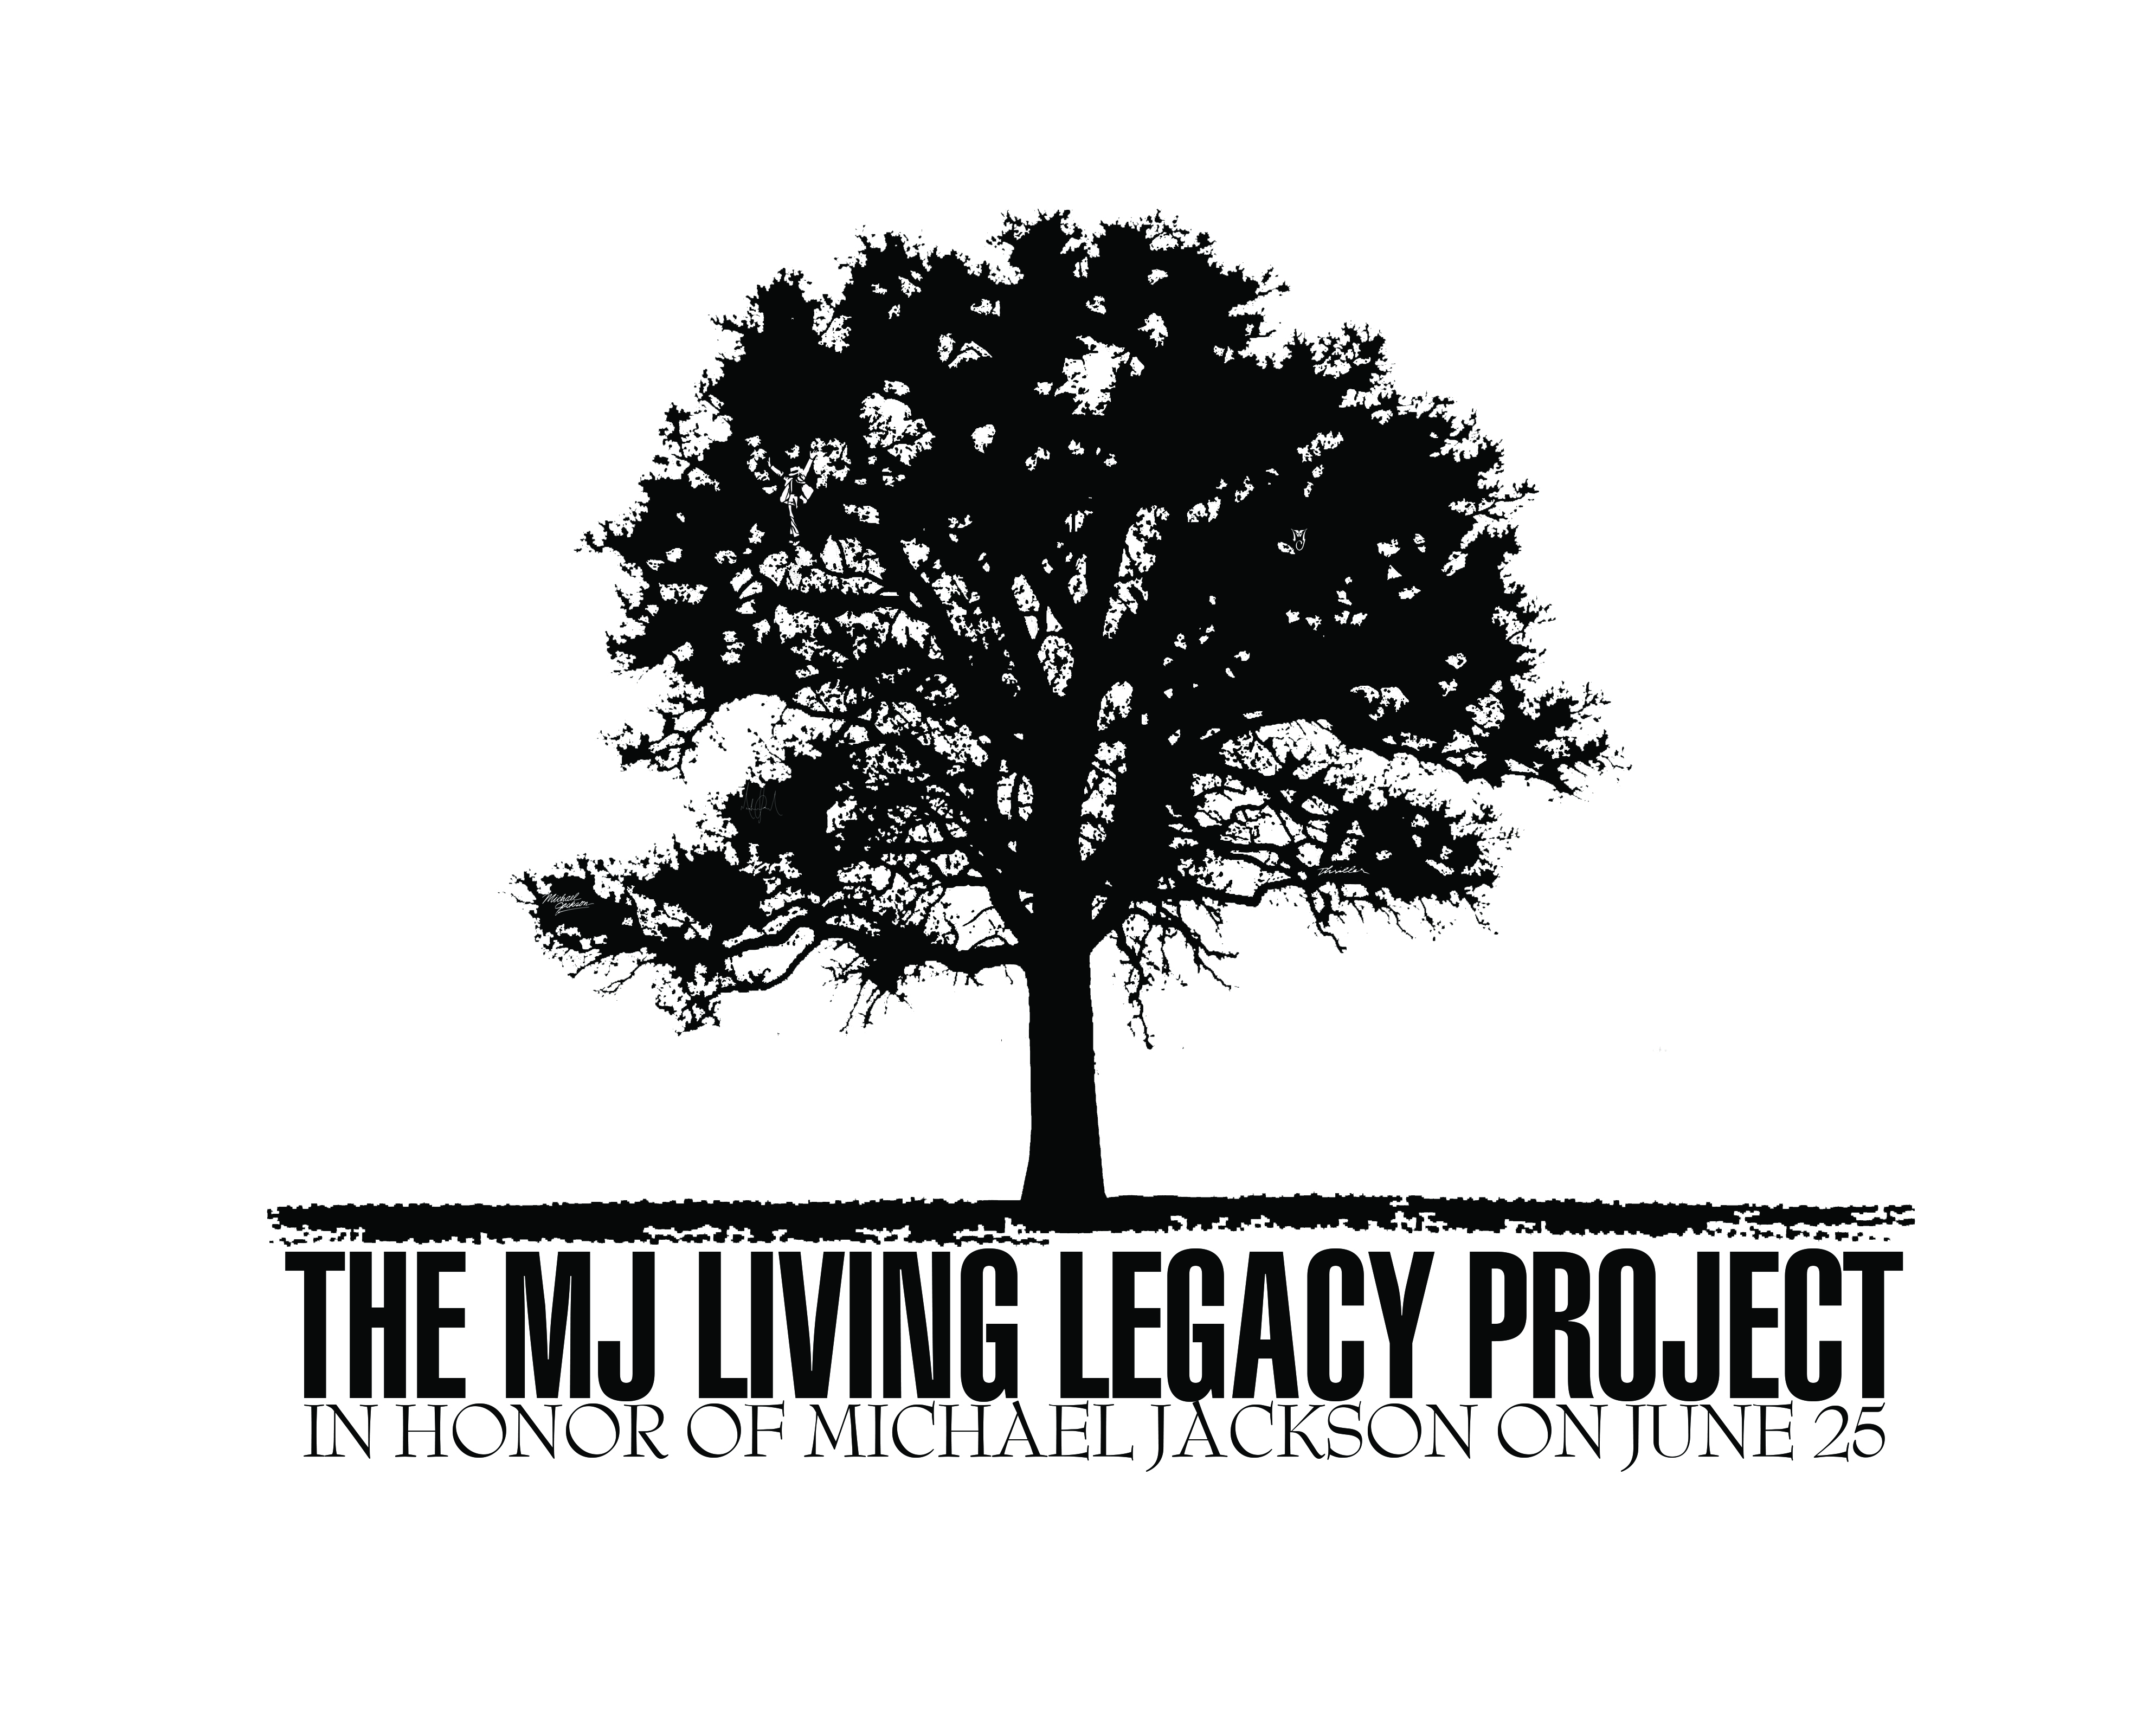 THE MJ LIVING LEGACY PROJECT